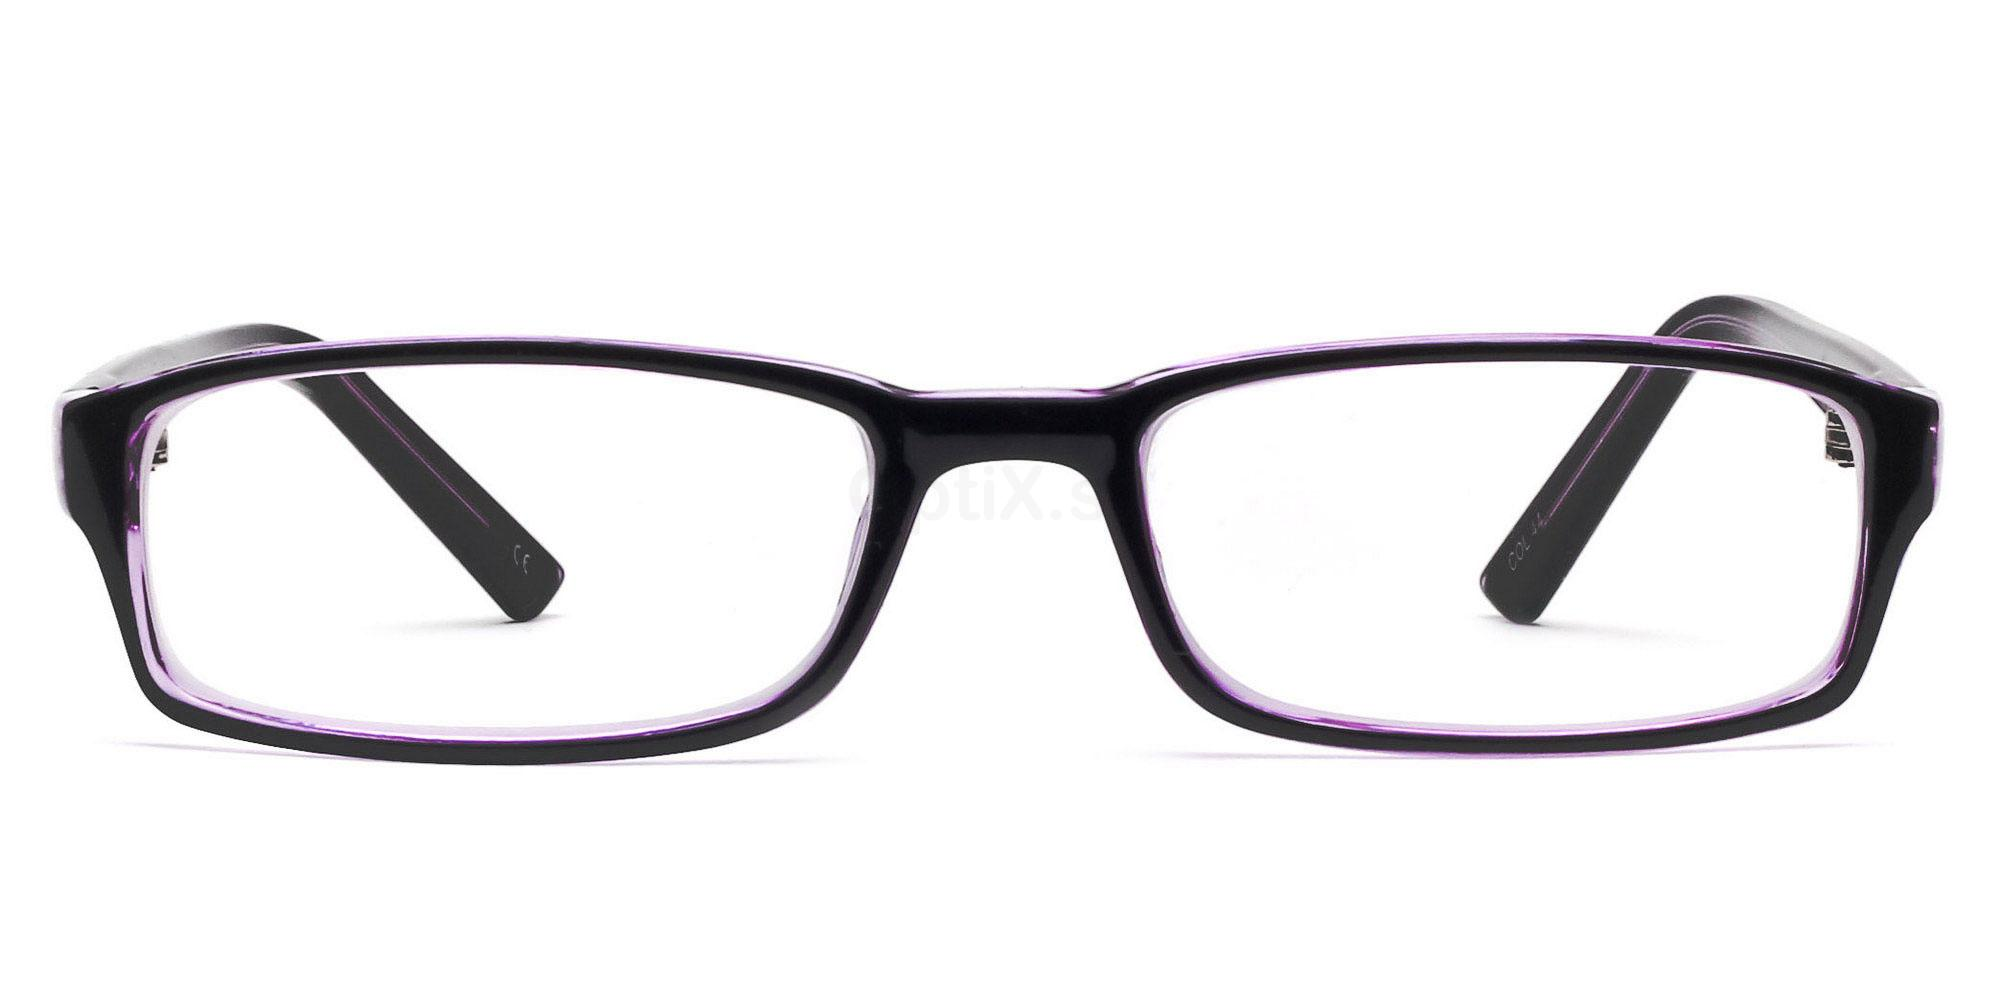 COL.44 2264 - Purple and Black , Savannah